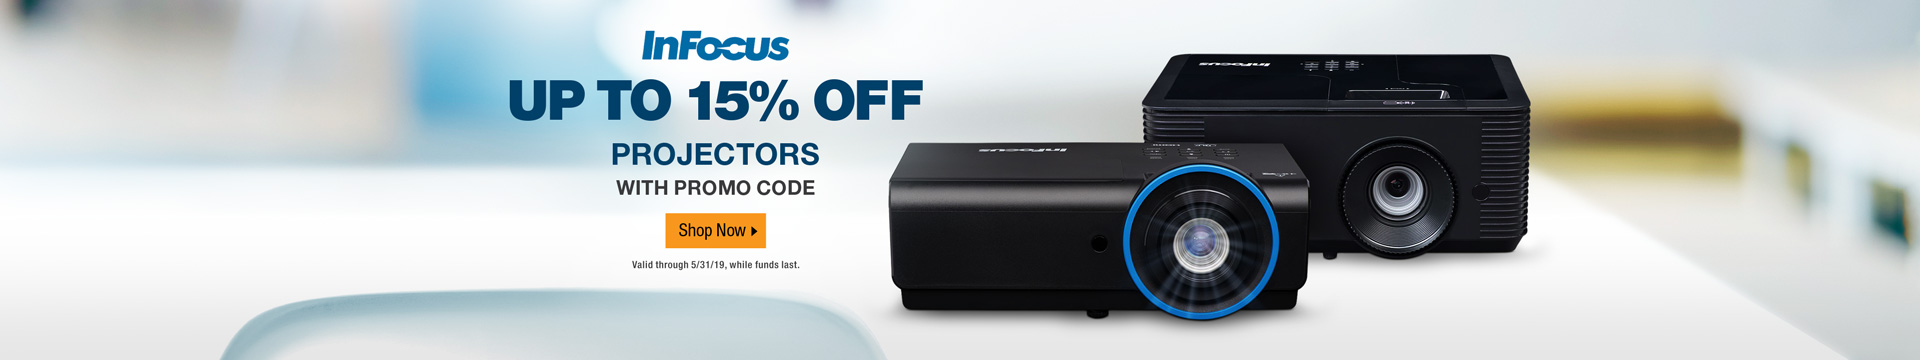 UP TO 15% OFF PROJECTORS